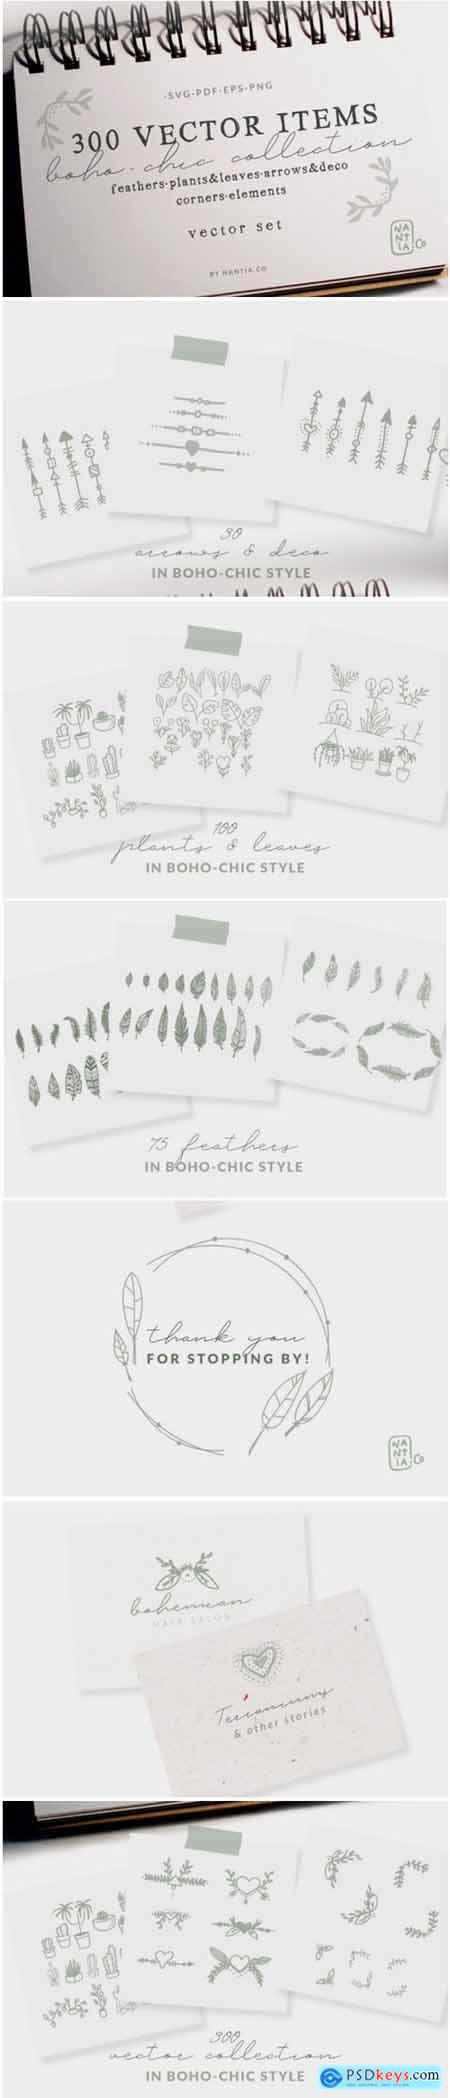 300 Boho-Chic Vectors Mega Pack 1761494